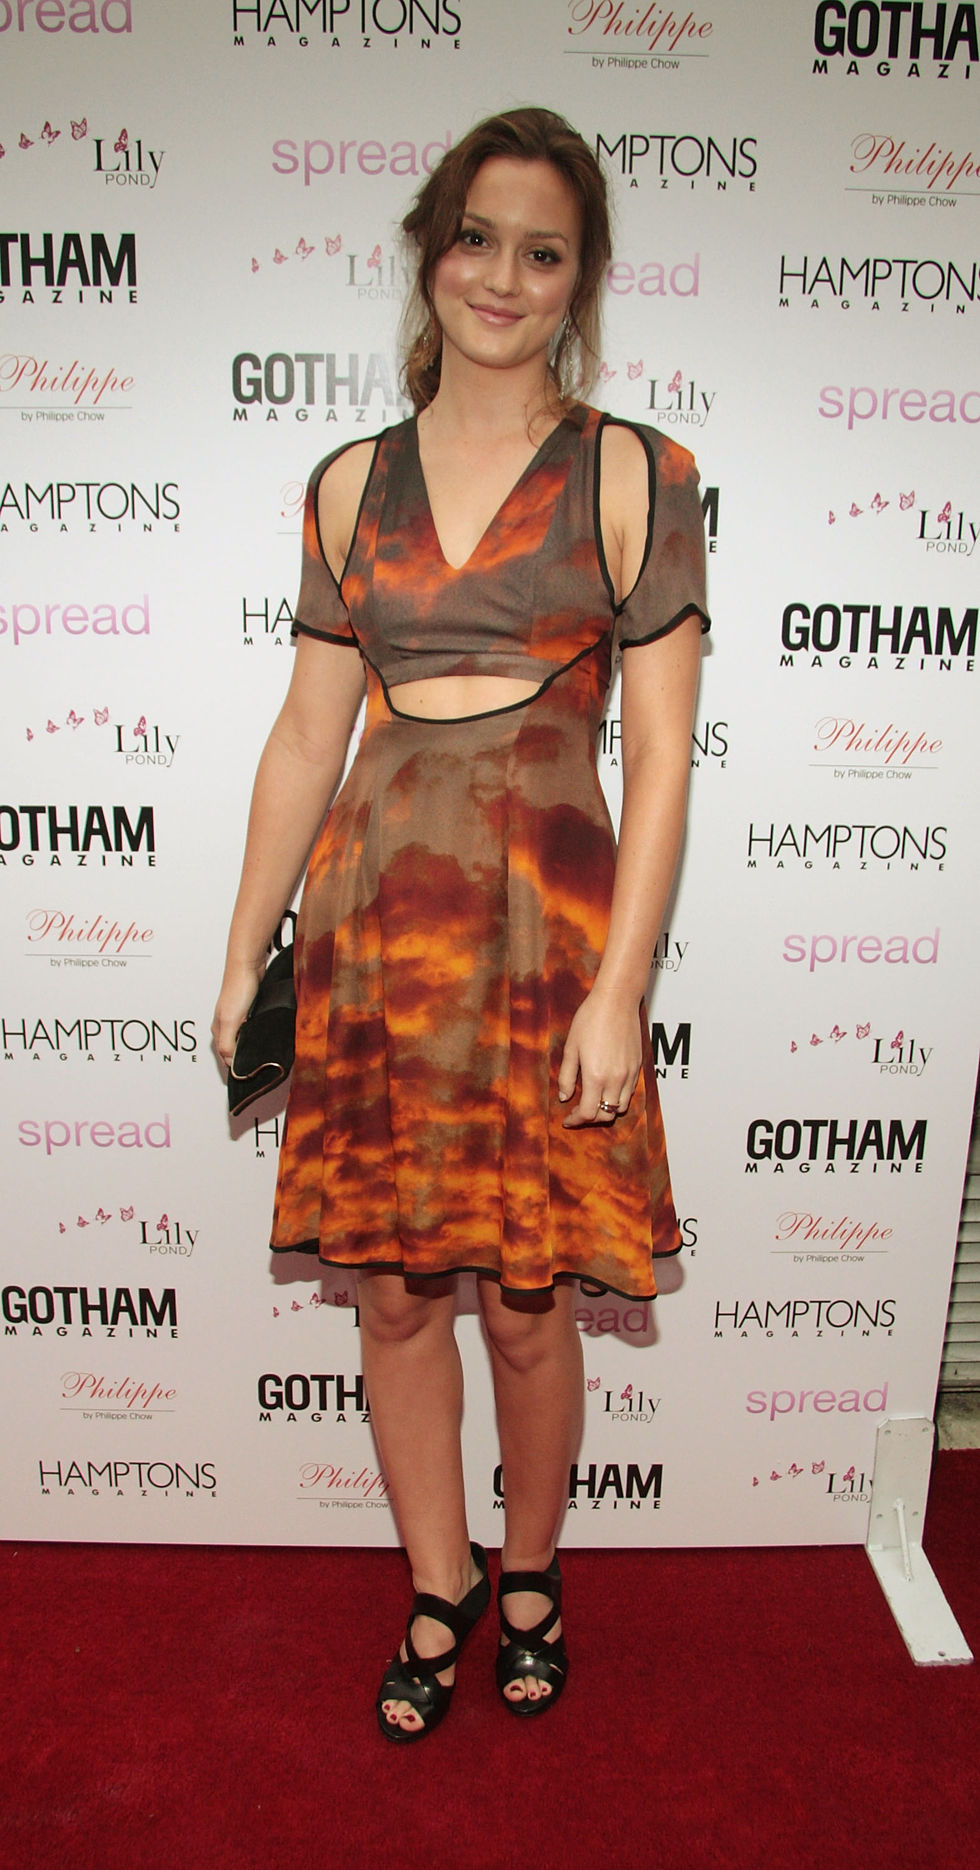 leighton-meester-spread-screening-in-new-york-01